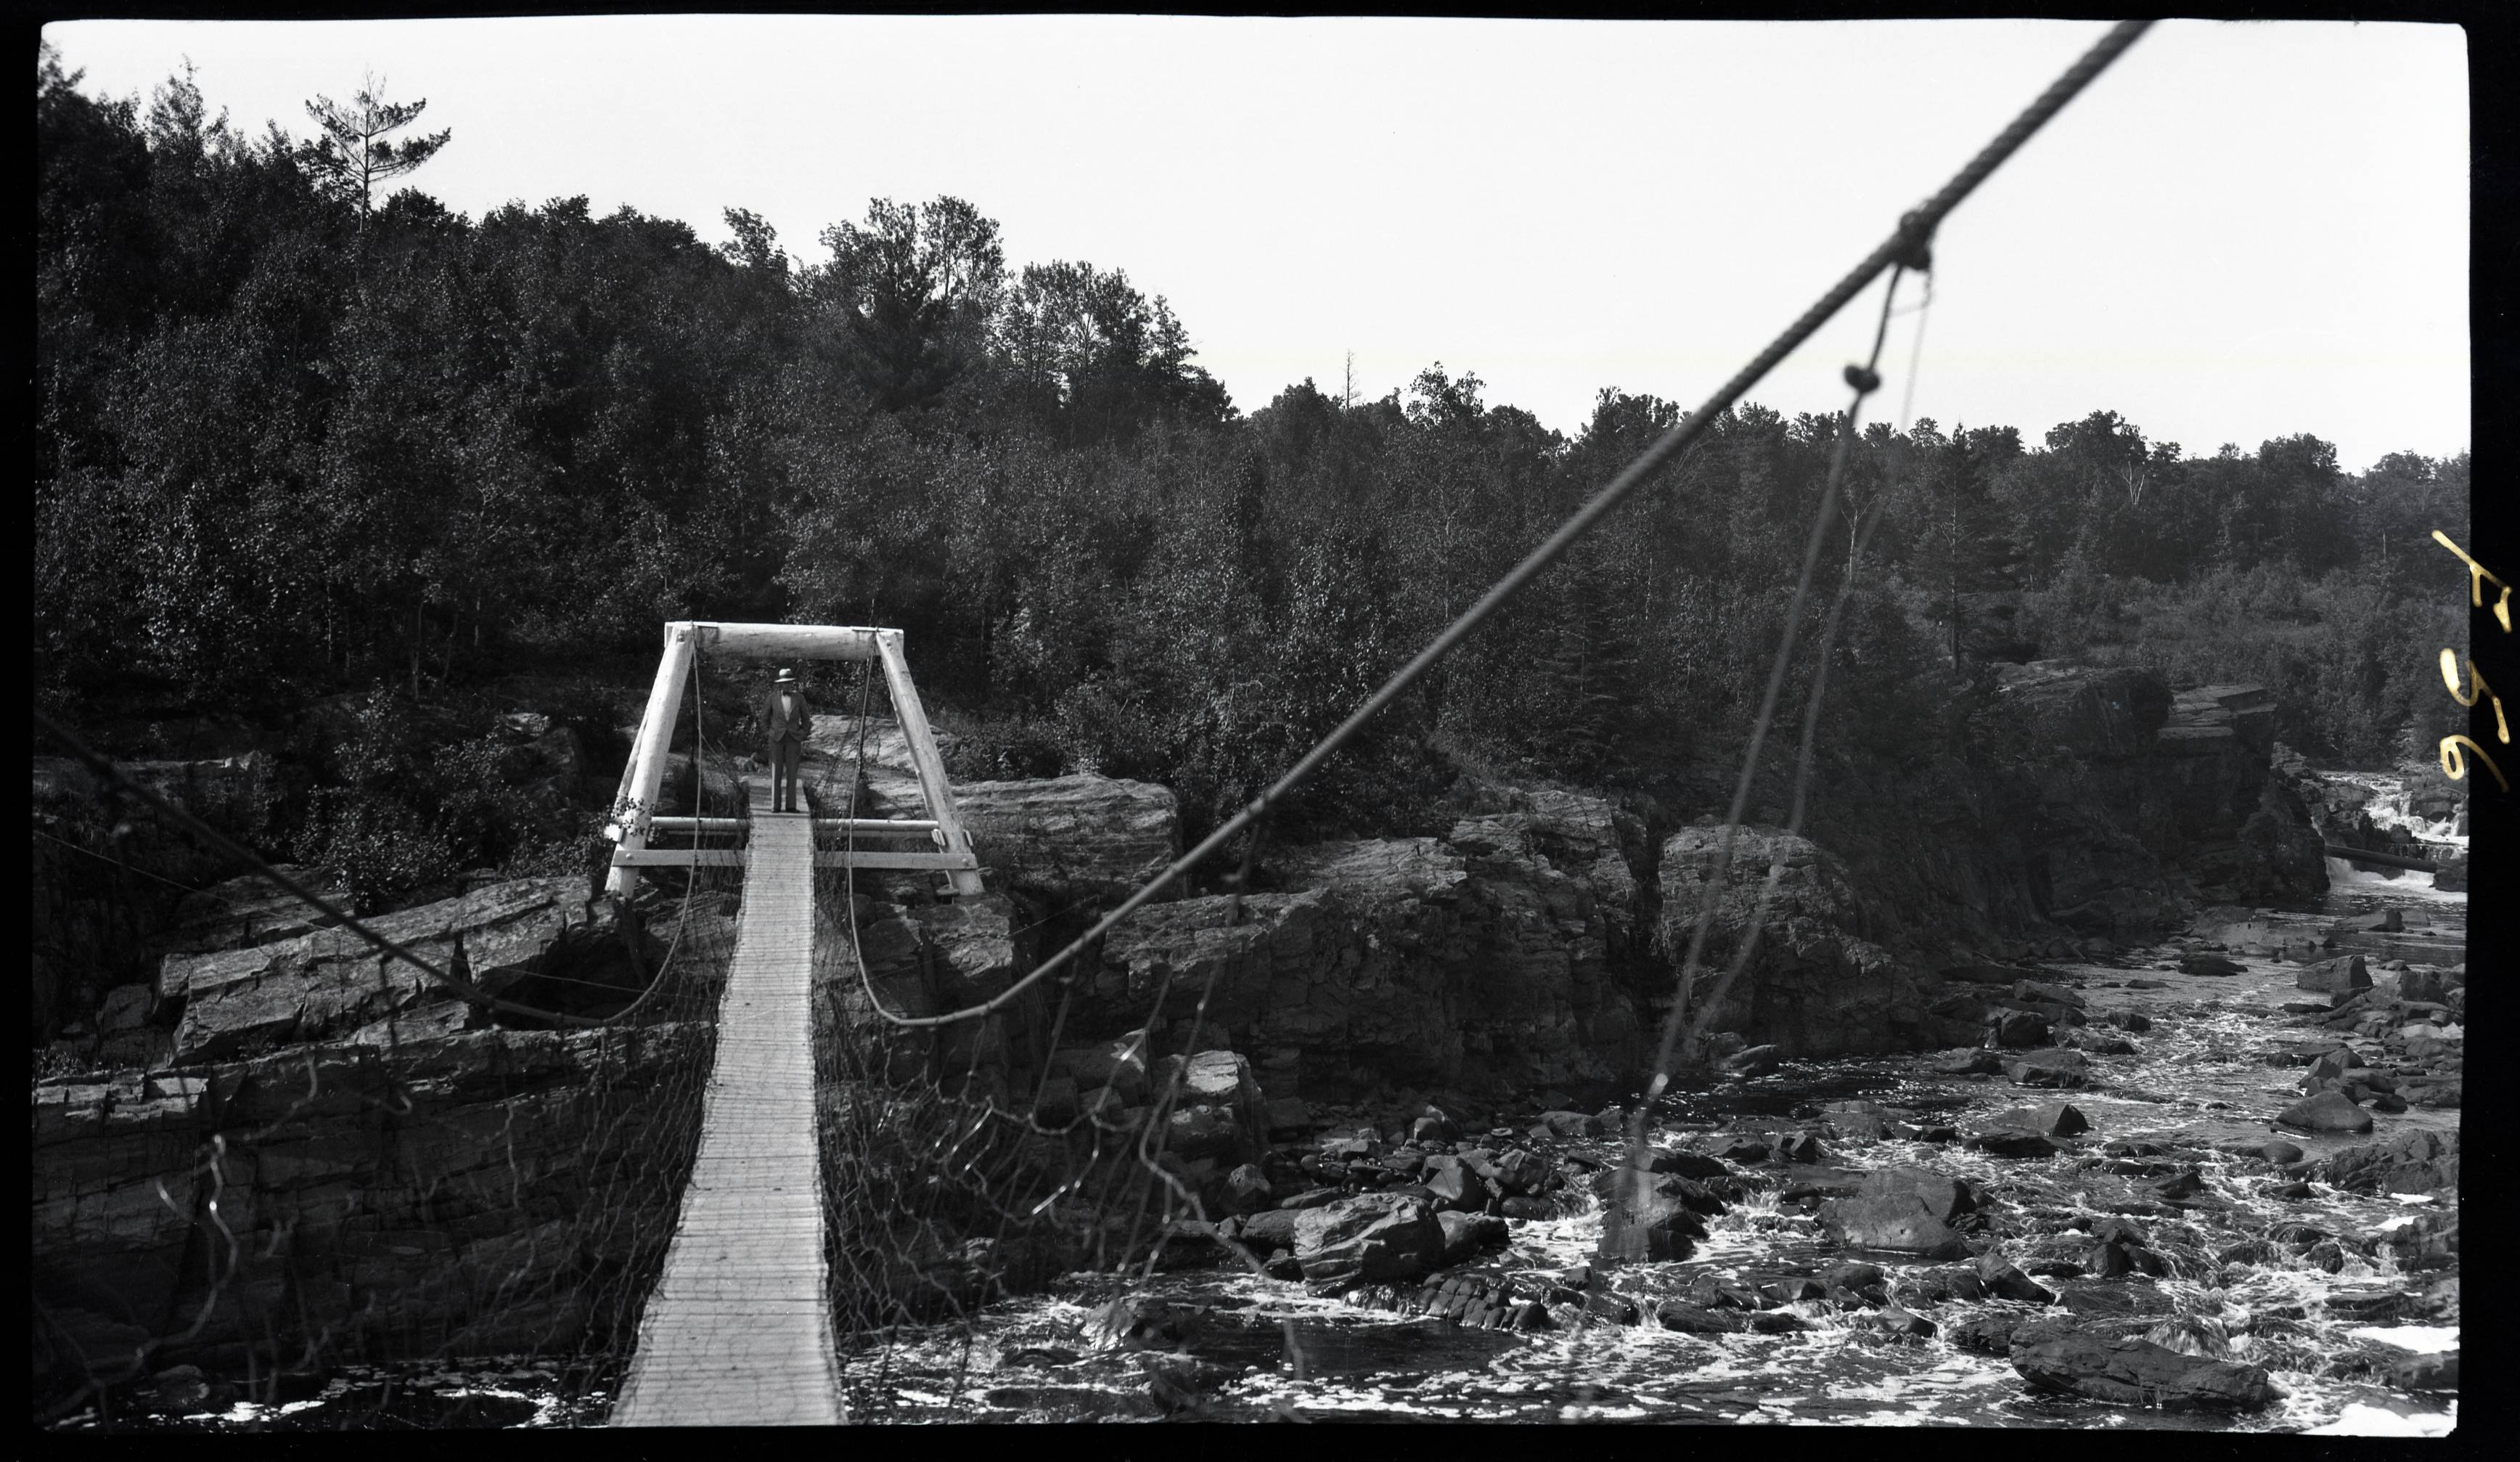 Jay Cooke State Park Suspension Bridge, 1929. Image courtesy of University of Minnesota Duluth, Kathryn A. Martin Library, Northeast Minnesota Historical Center Collections.